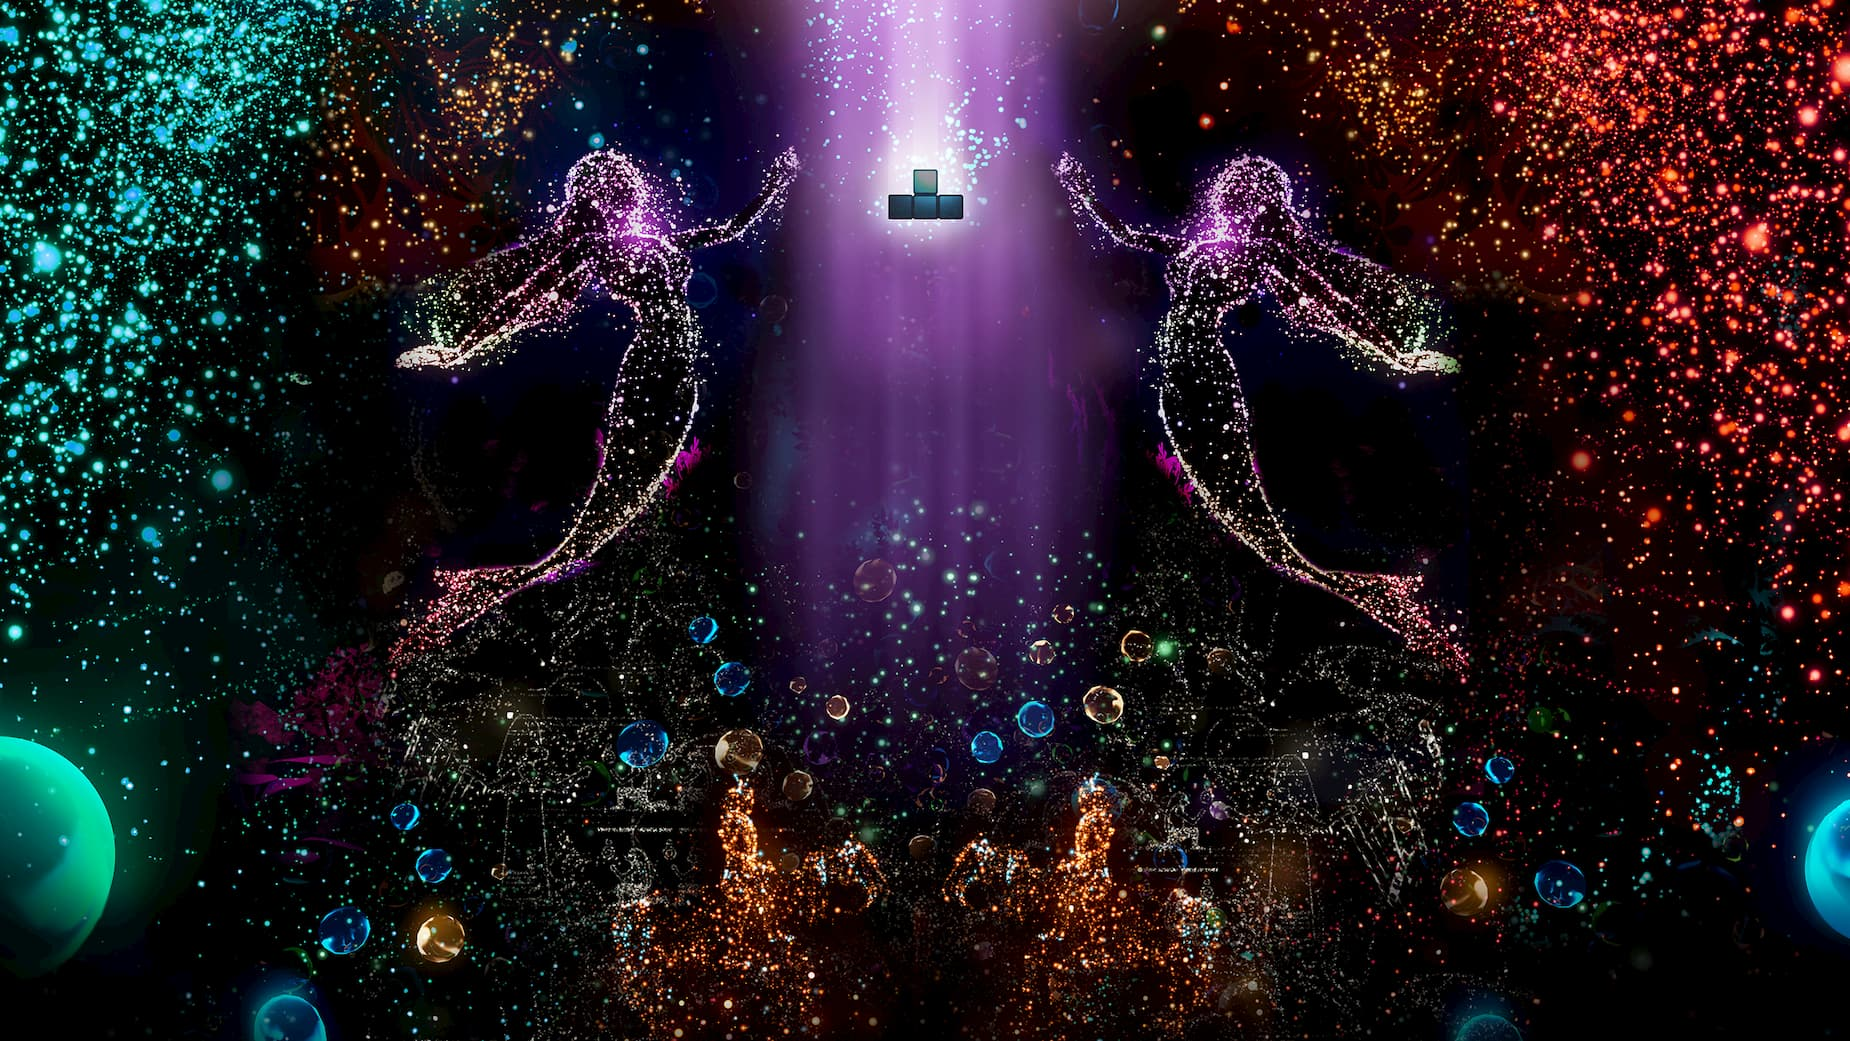 Epic Games Store Exclusive Tetris Effect Is Coming To PC And PC VR On July 23rd